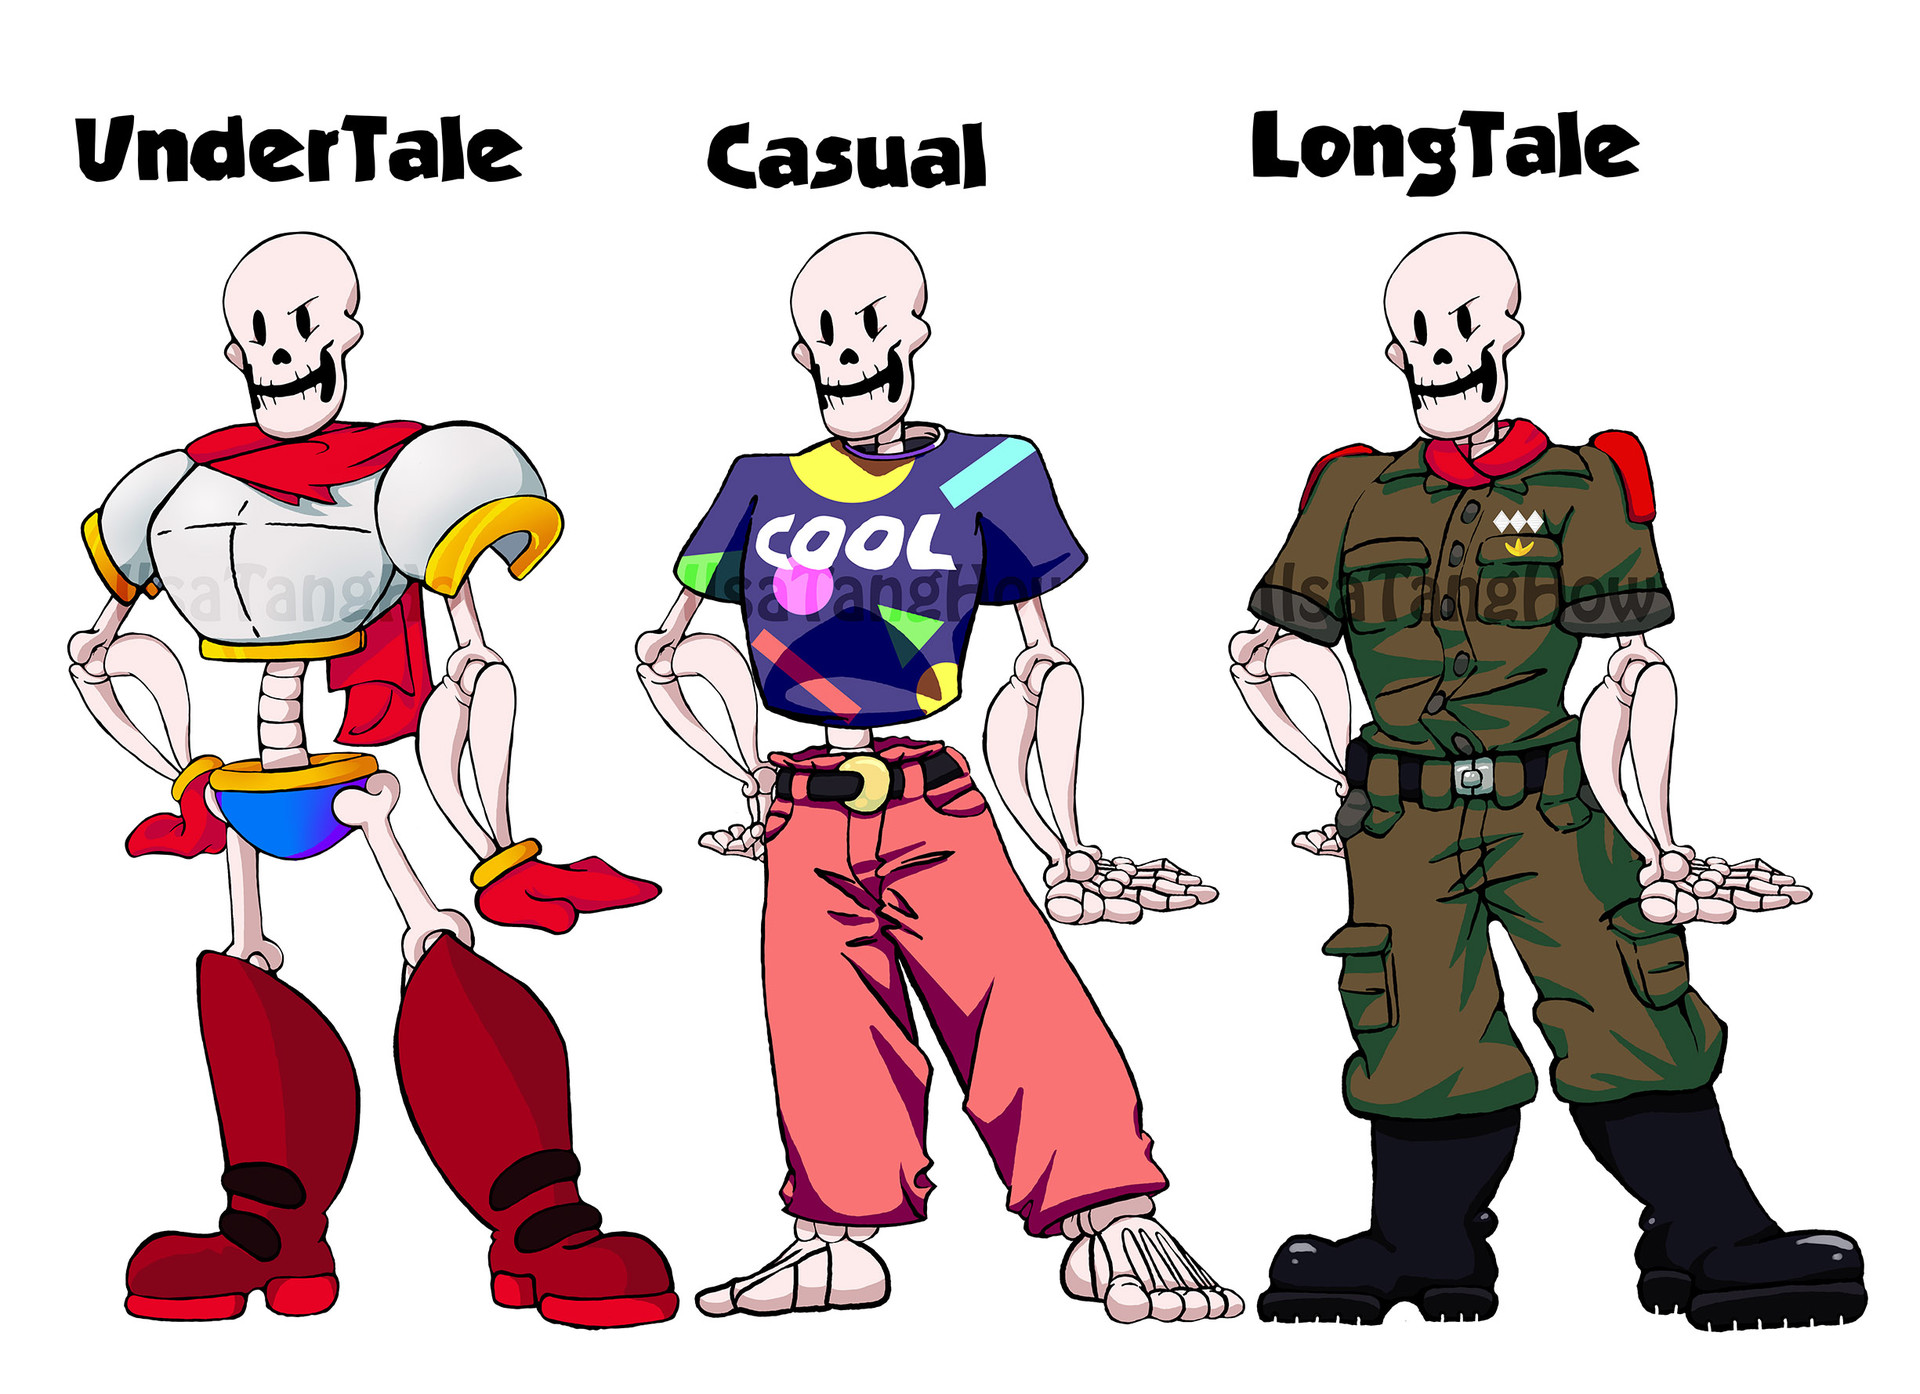 ArtStation - UnderTale - Papyrus, LongTale Animation